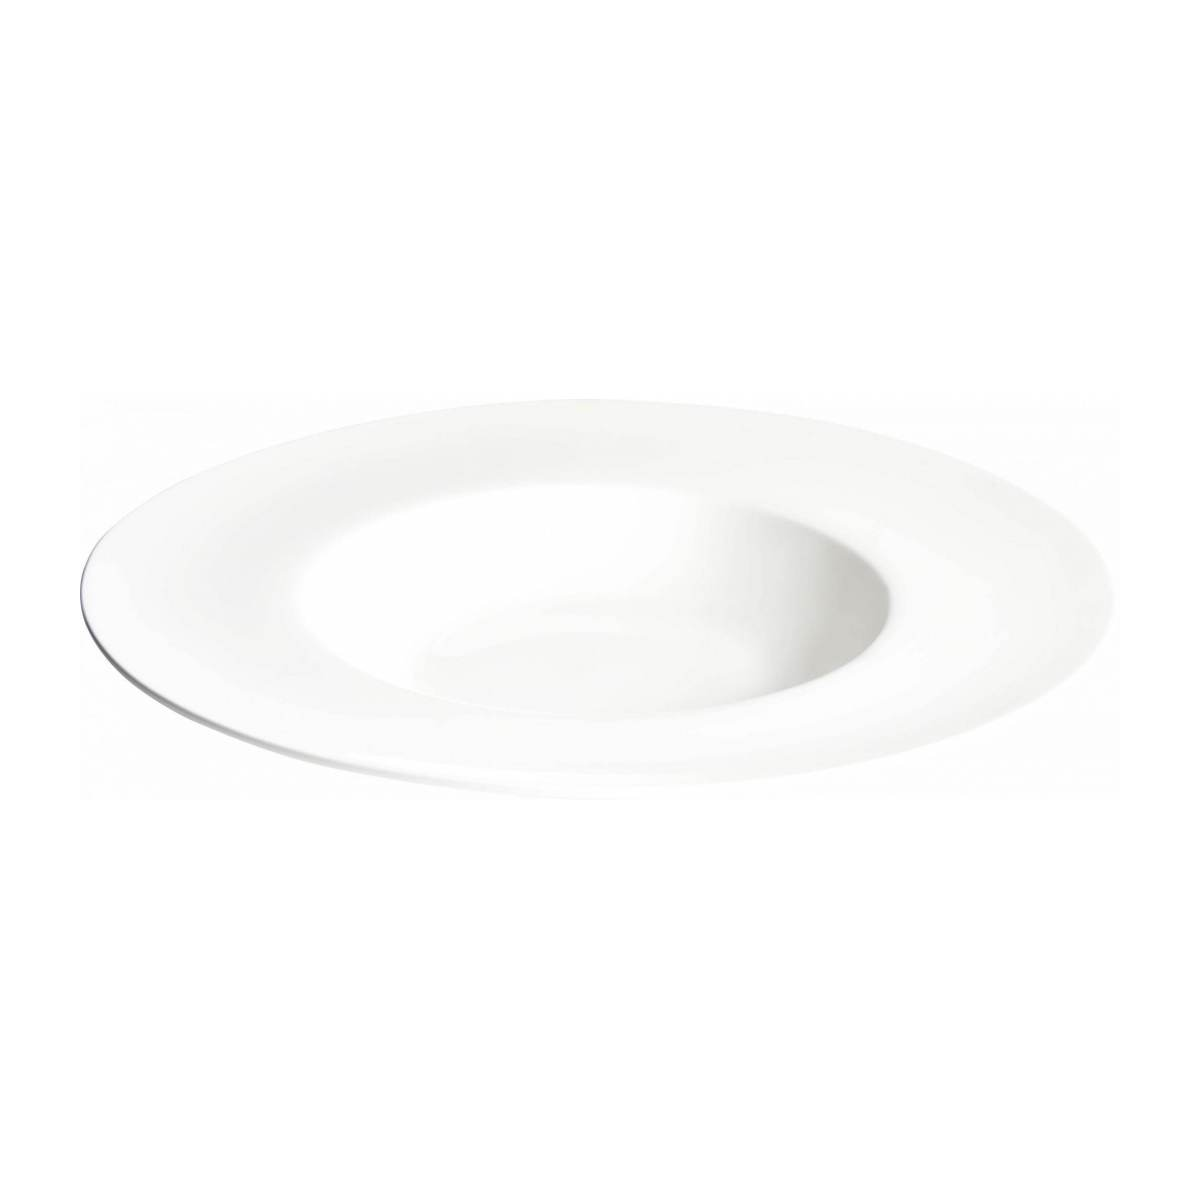 Plate for risotto in porcelain n°2